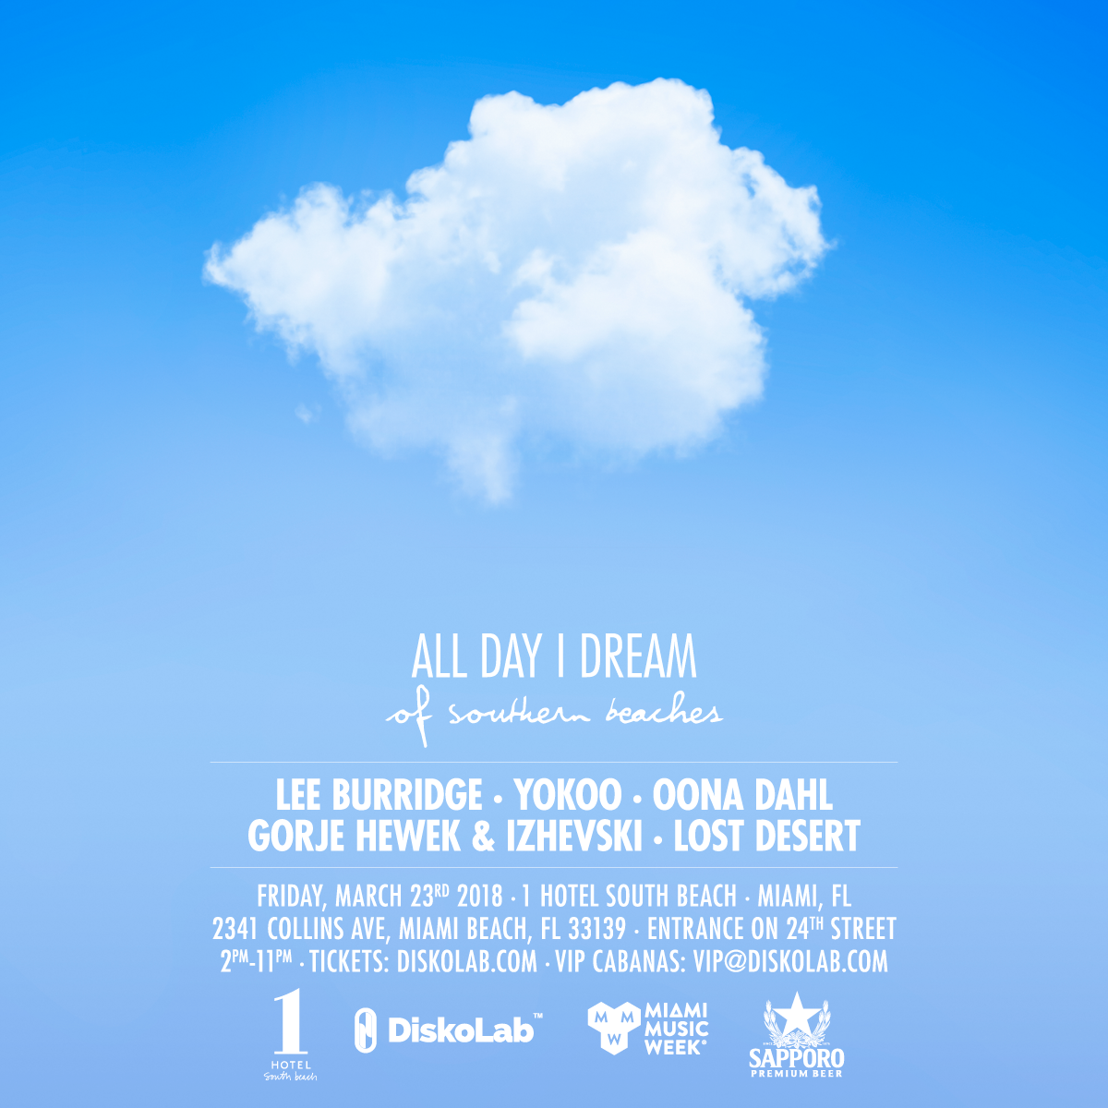 Lee Burridge Announces Lineup for All Day I Dream Event at Miami Music Week 2018